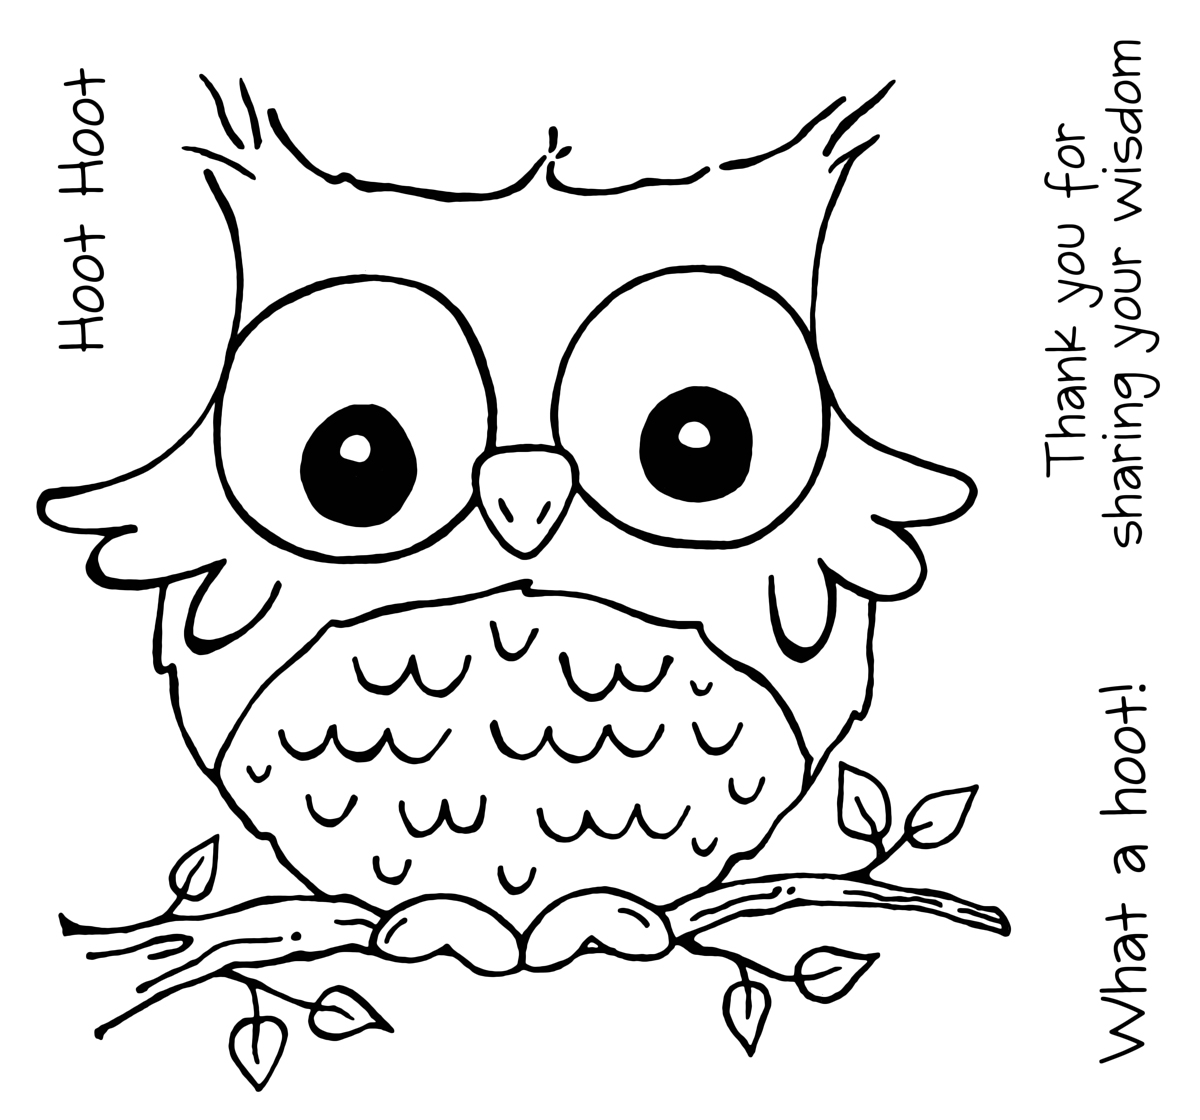 easy cute owl coloring pages cute owl coloring page free printable coloring pages pages cute easy coloring owl